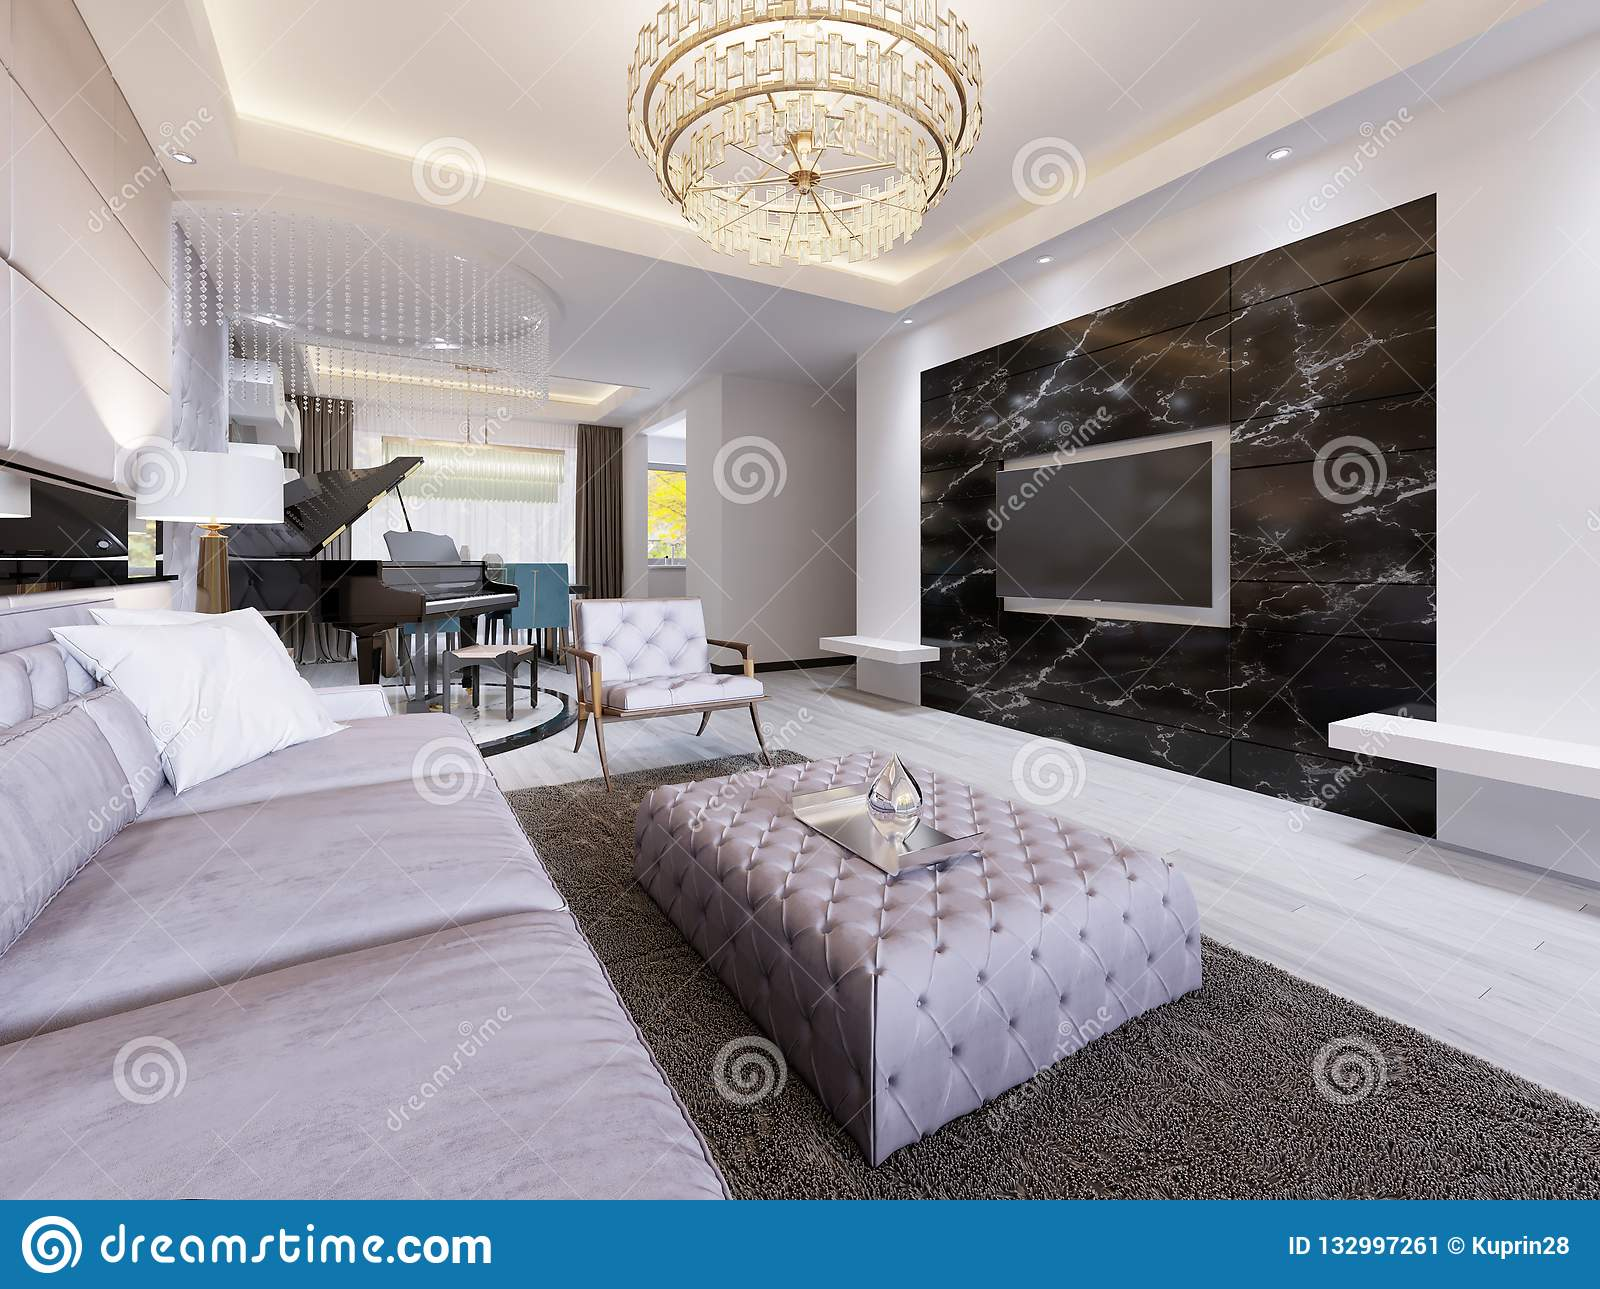 Built In Tv On The Wall In The Luxurious Living Room Black Marble Wall With Tv And White Shelves Modern Living Room In Stock Illustration Illustration Of Interior Decor 132997261